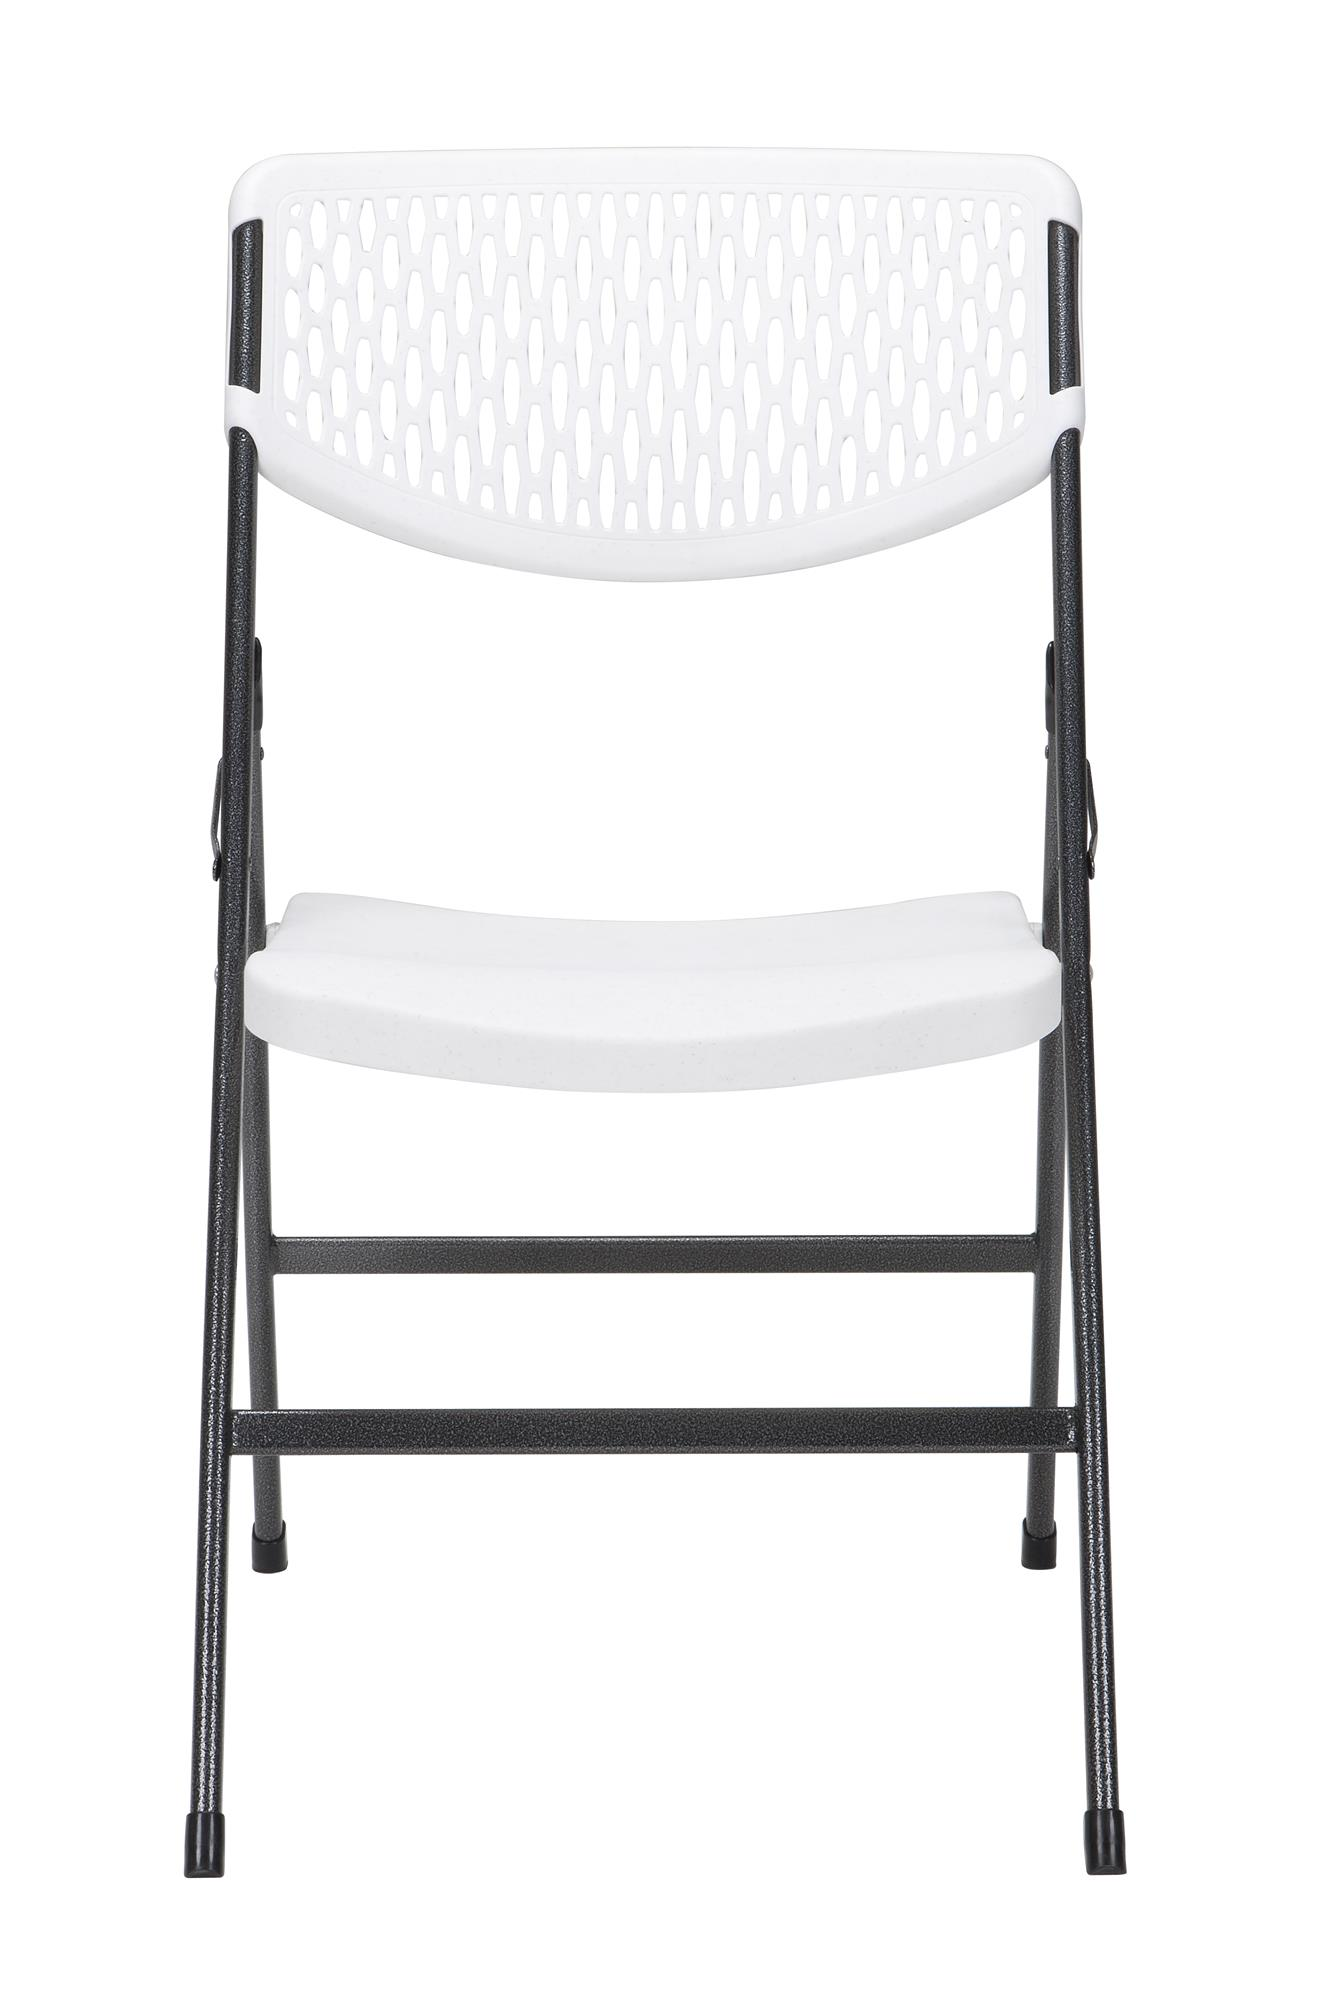 Surprising Cosco Mesh Resin Folding Chair 4 Pack White Theyellowbook Wood Chair Design Ideas Theyellowbookinfo